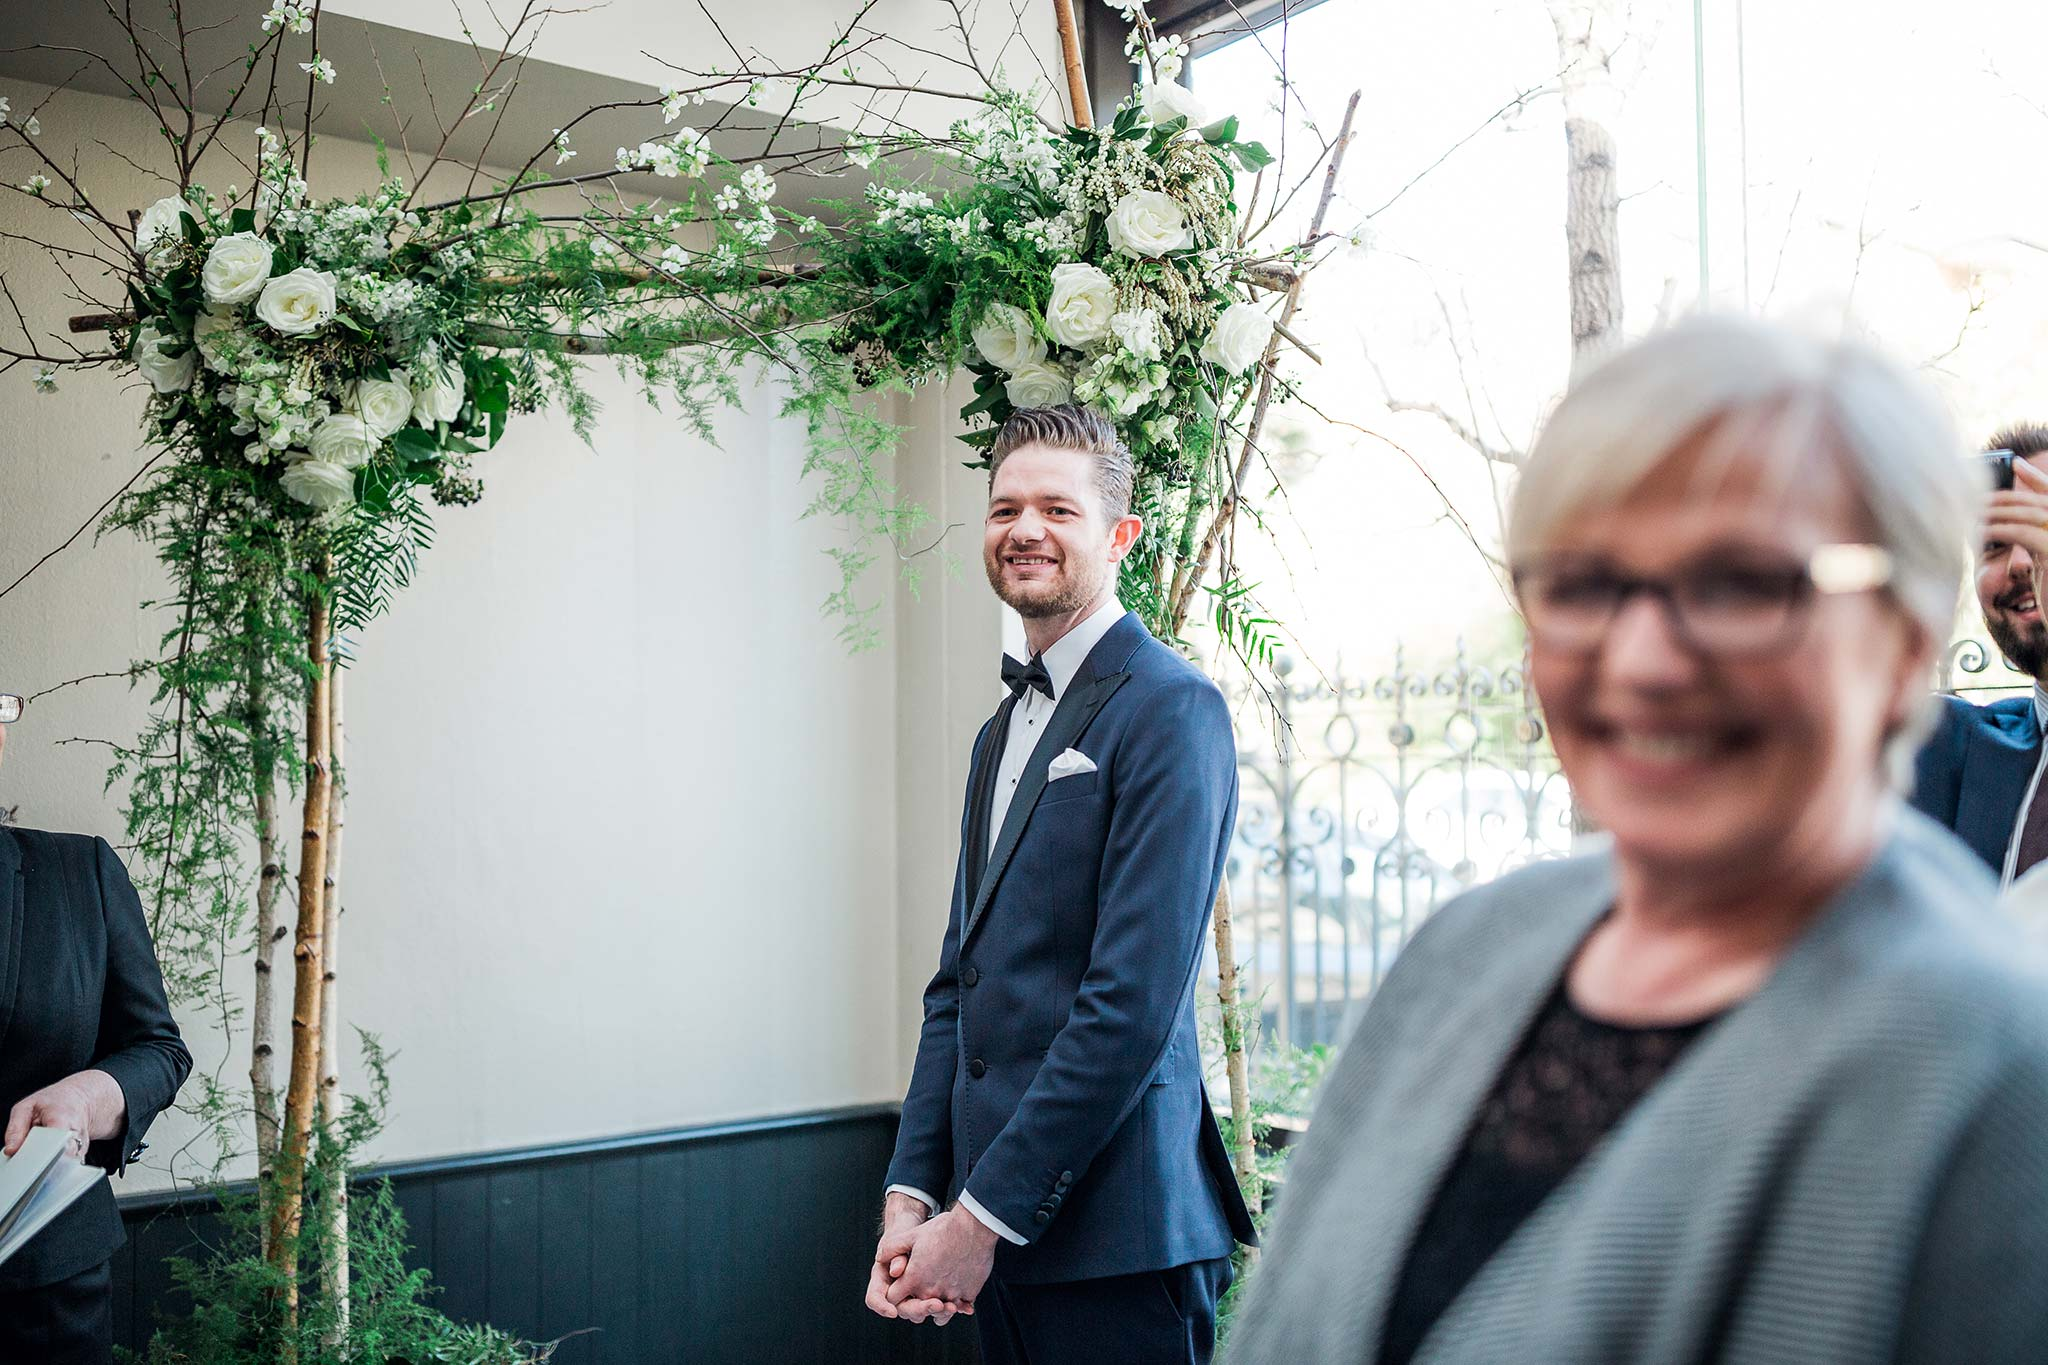 melbourne-fitzroy-st-andrews-conservatory-pumphouse-wedding-venue-ceremony-groom-expression